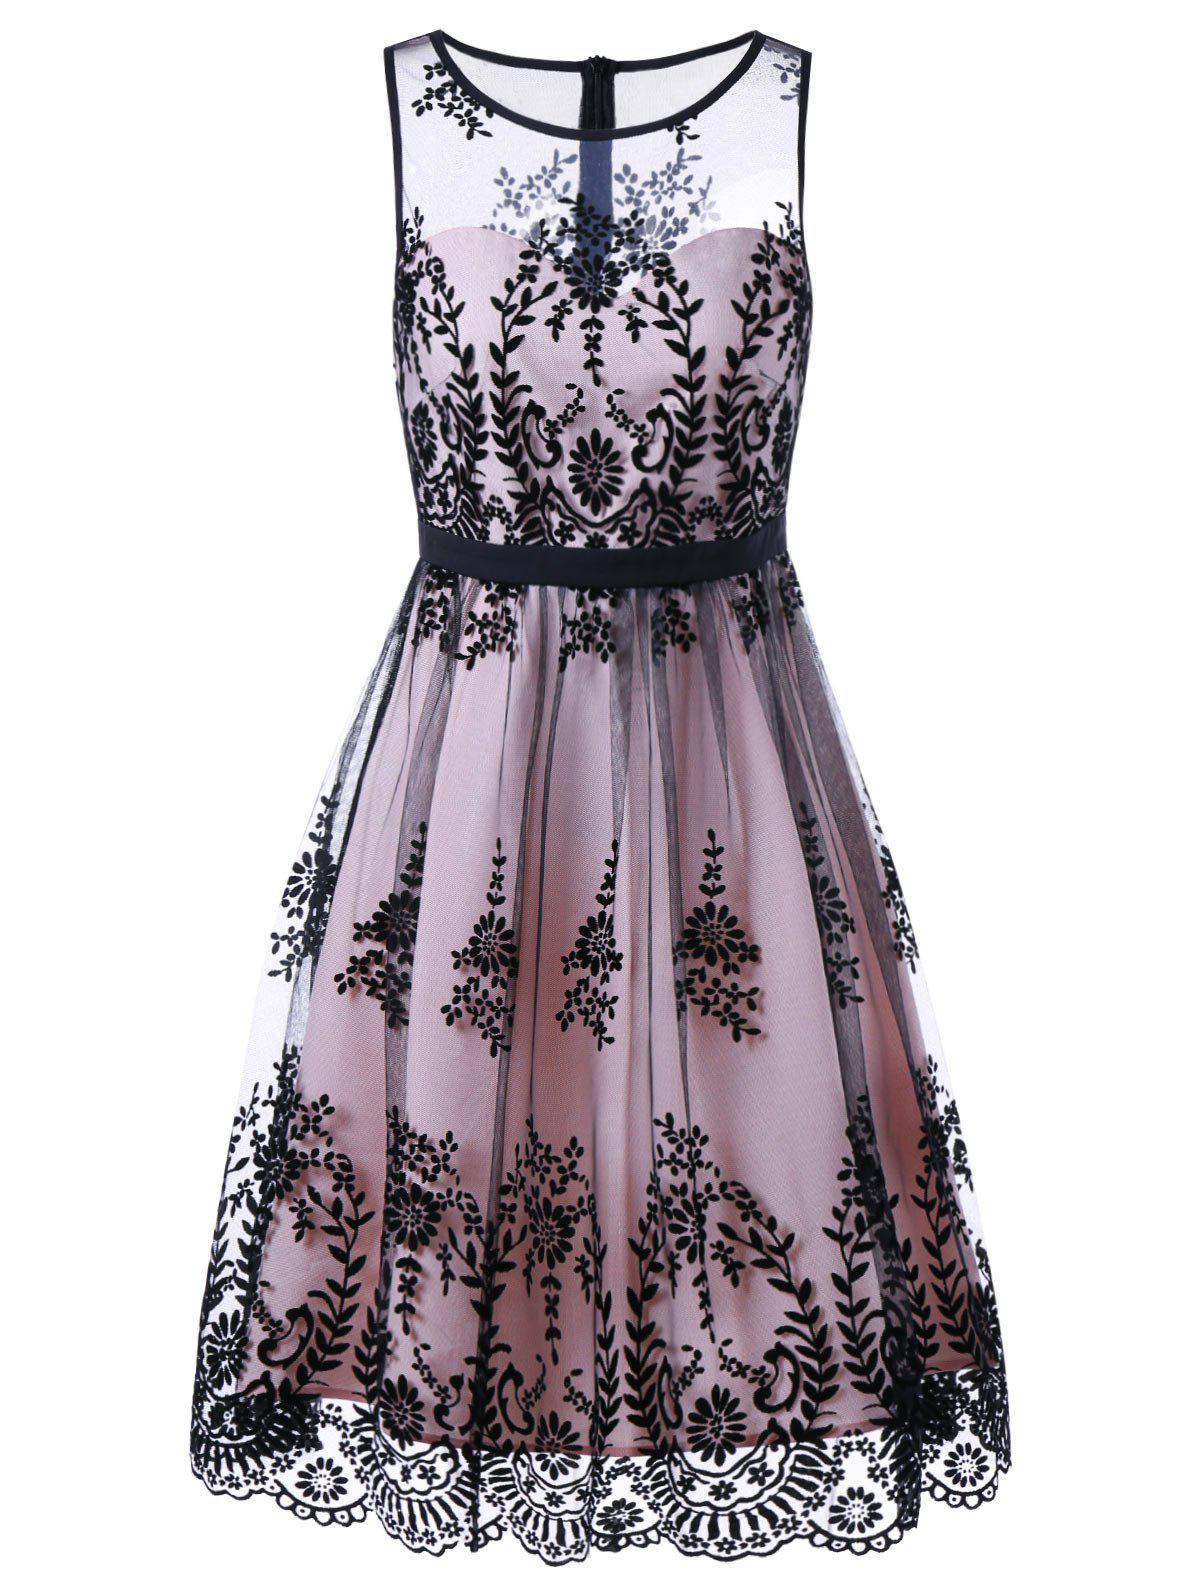 Discount Mesh Floral Print Cocktail Prom Dress